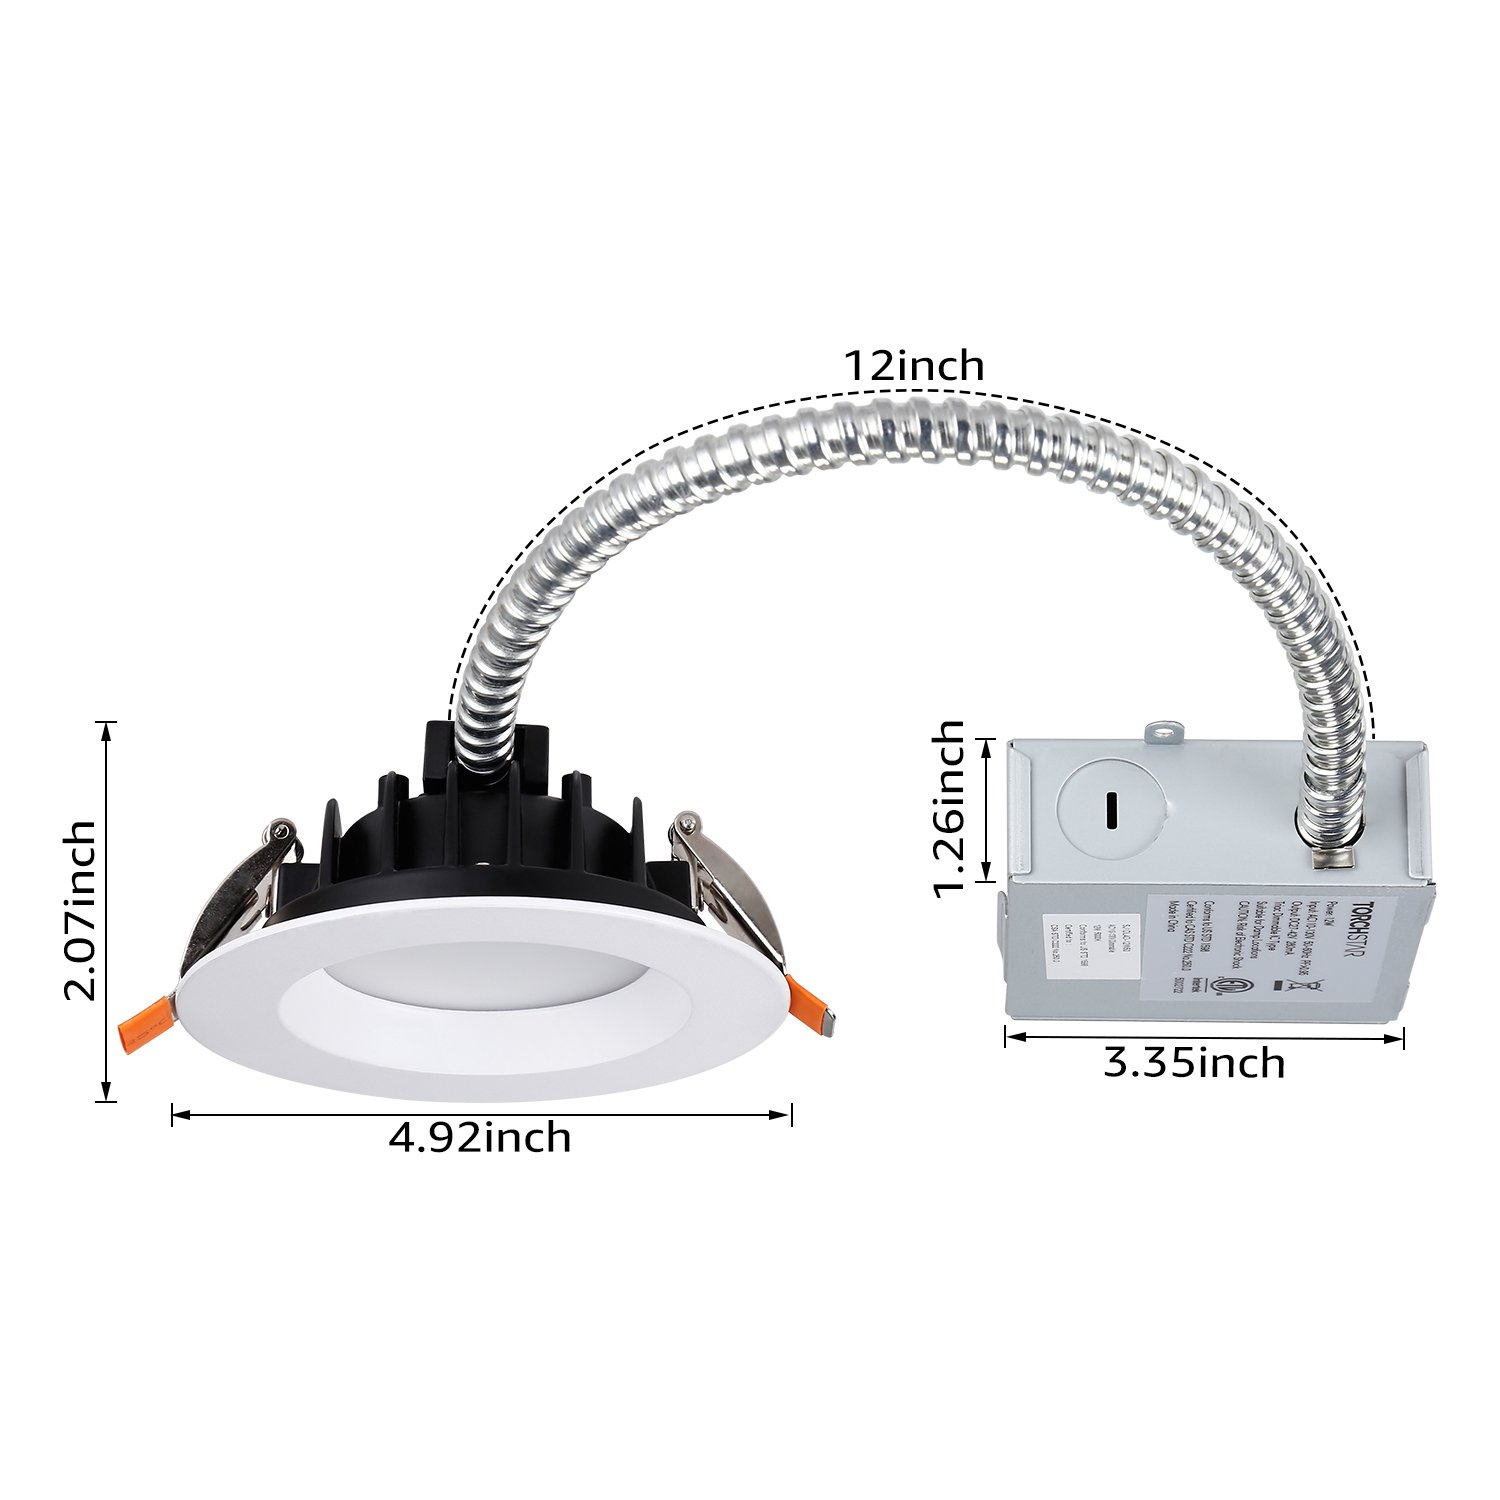 "TORCHSTAR 12W 4"" Slim Recessed Ceiling Light with Junction Box, Dimmable Can Killer, IC Rated Airtight Downlight, 90W Equiv, ETL & Energy Star Certified, 3000K Warm White by TORCHSTAR (Image #8)"